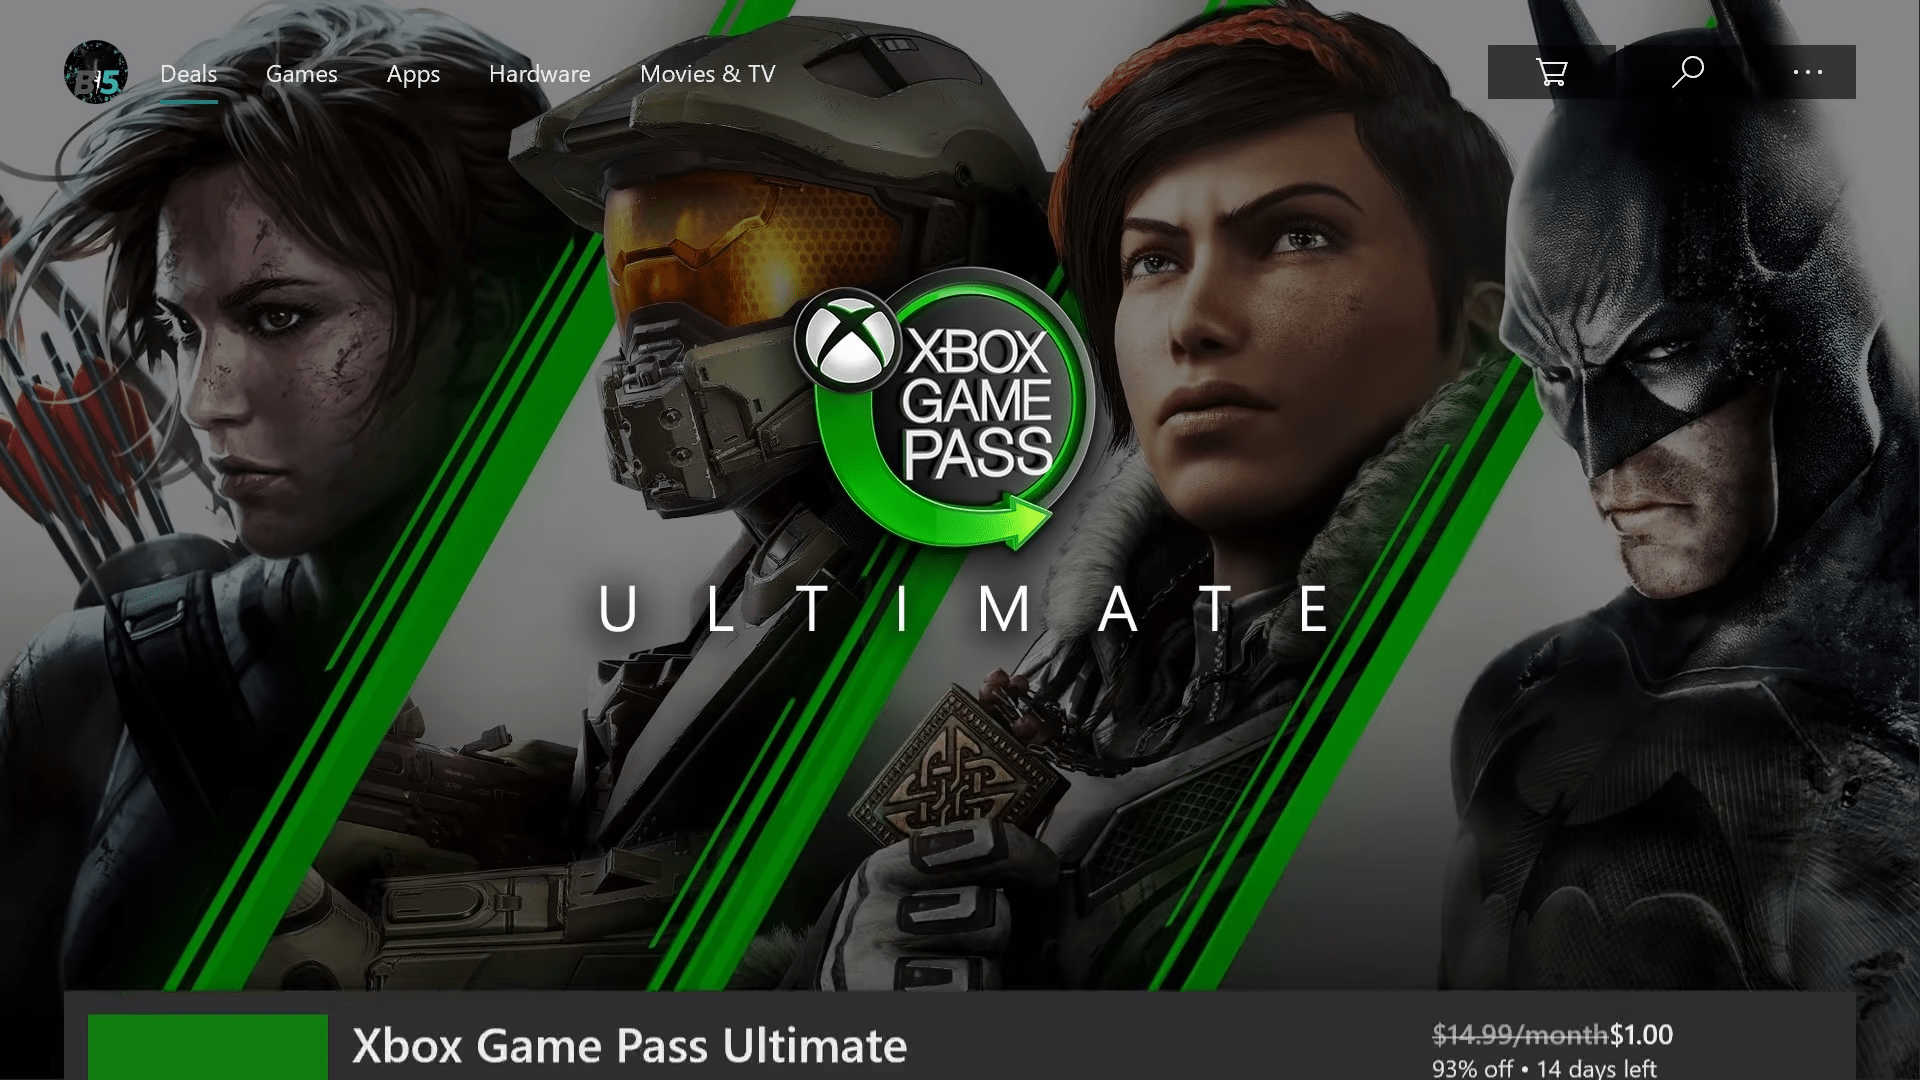 Xbox Game Pass Is Getting More Than Fifty Games Over The Next Year, Includes Heavy Hitters Like The Witcher 3: Wild Hunt and Halo: Reach